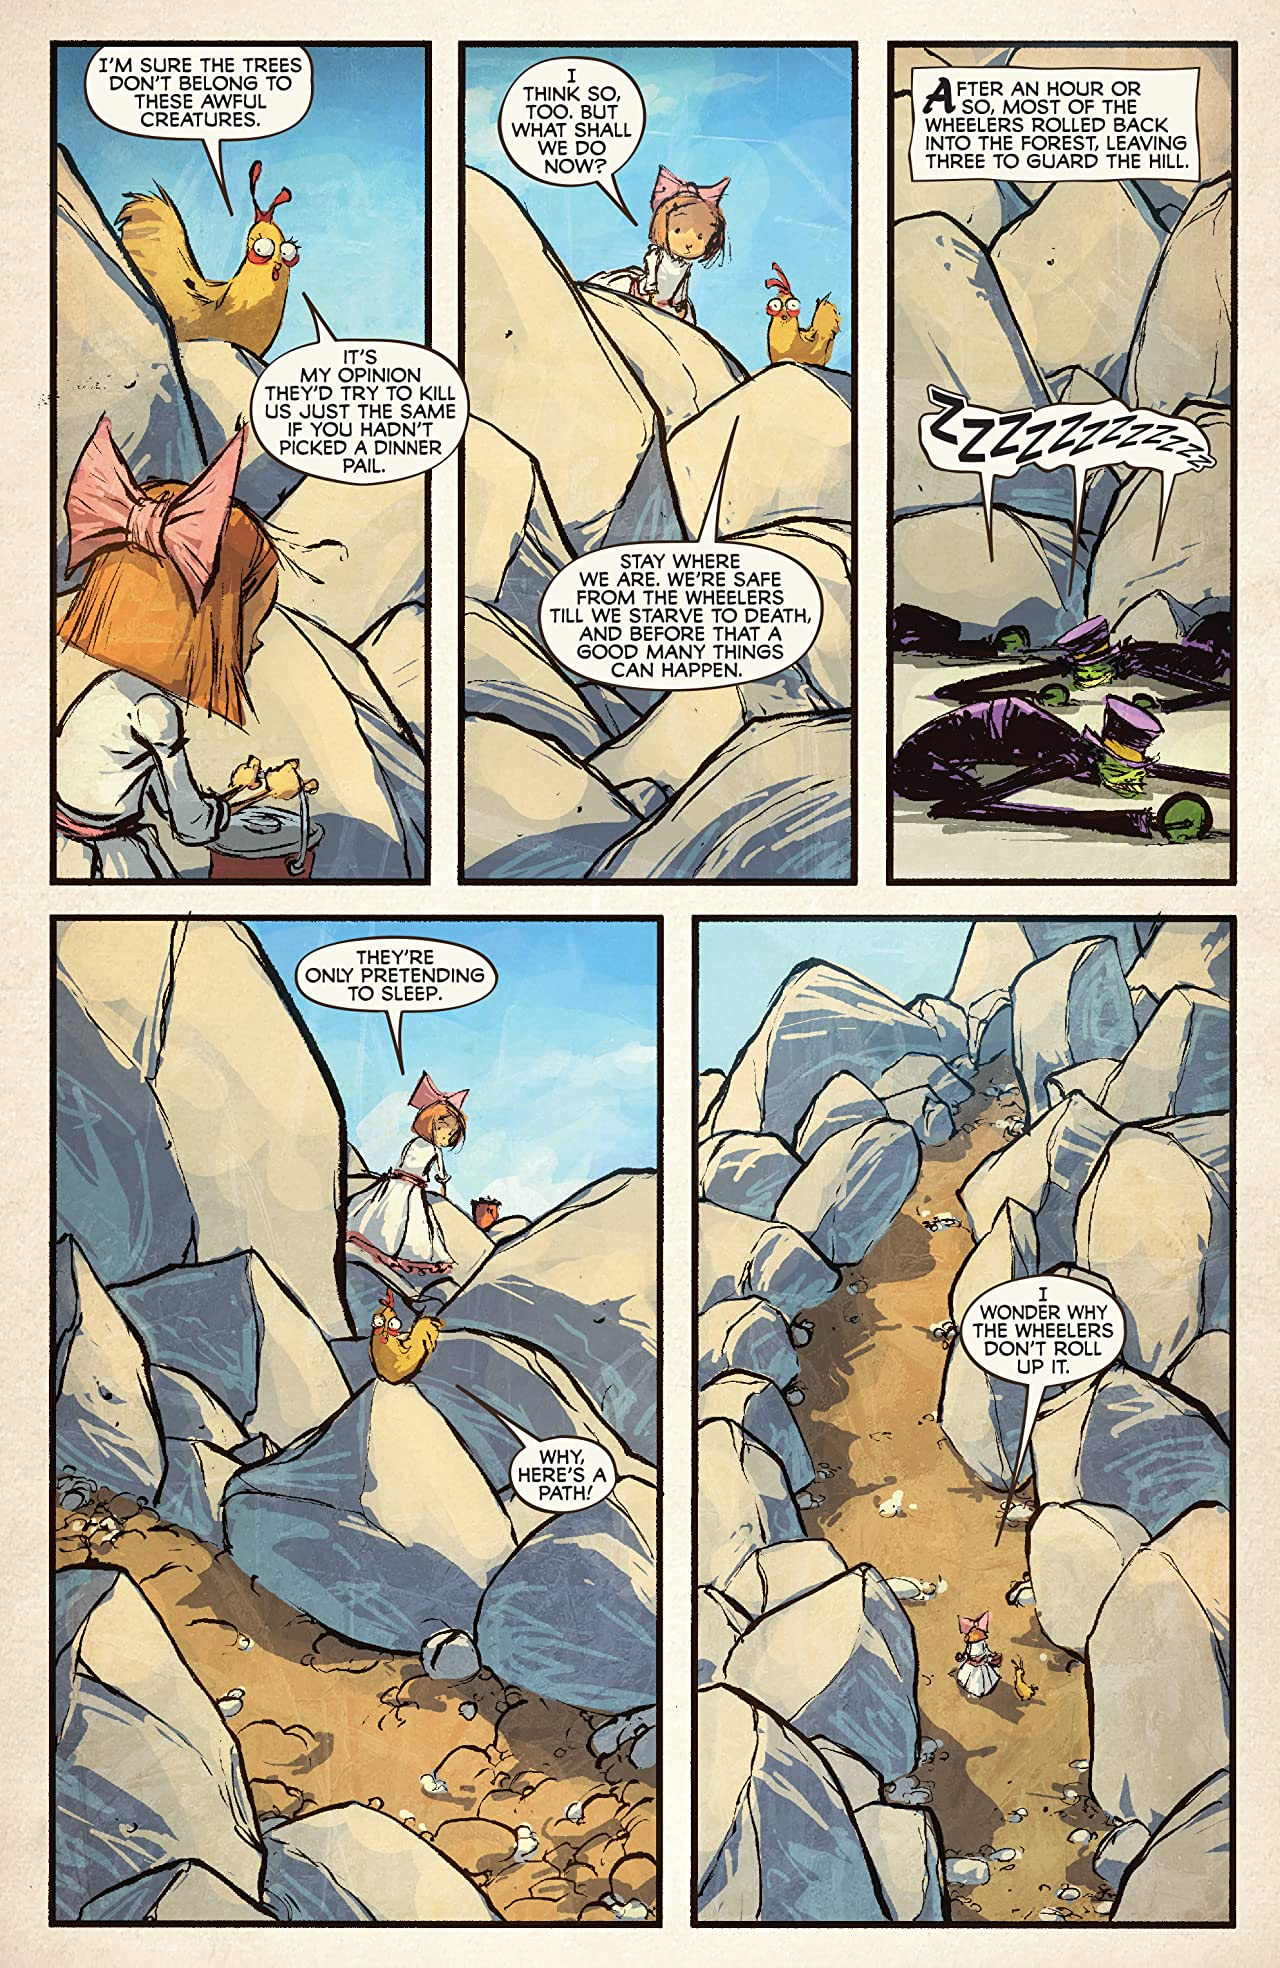 Ozma of Oz (2010-2011) #2 (of 8)